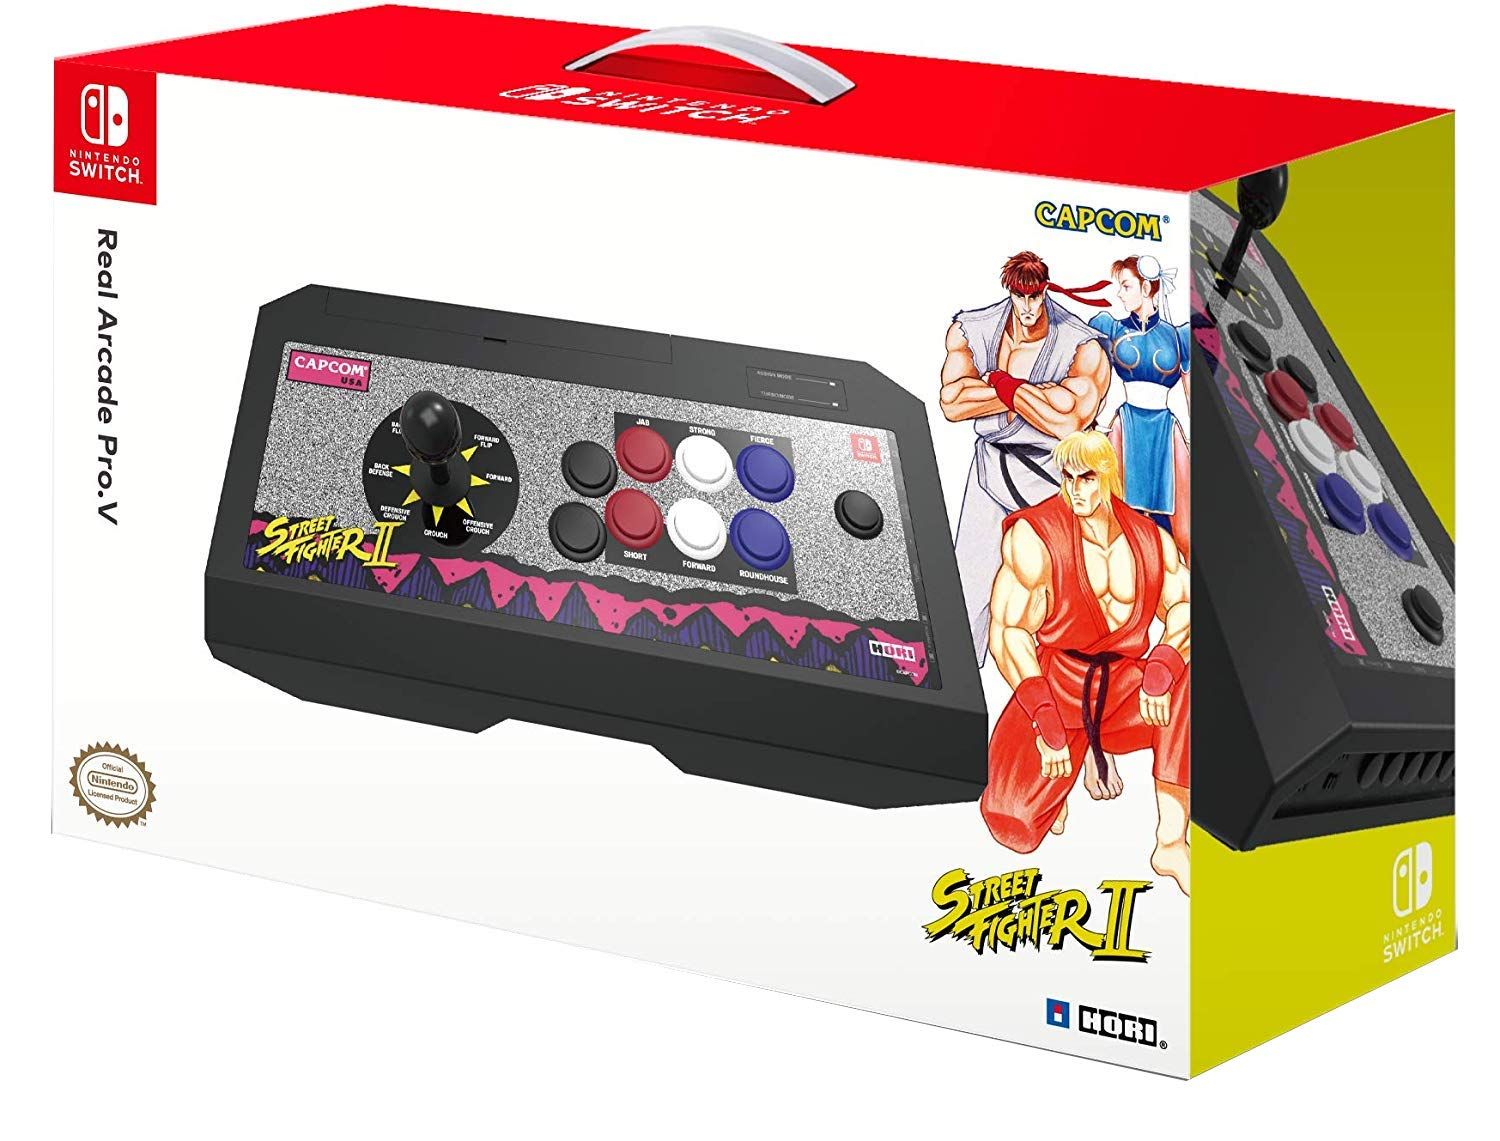 HORI Nintendo Switch Real Arcade Pro - Street Fighter™ Edition (Classic Arcade) Officially Licensed by Nintendo & Capcom